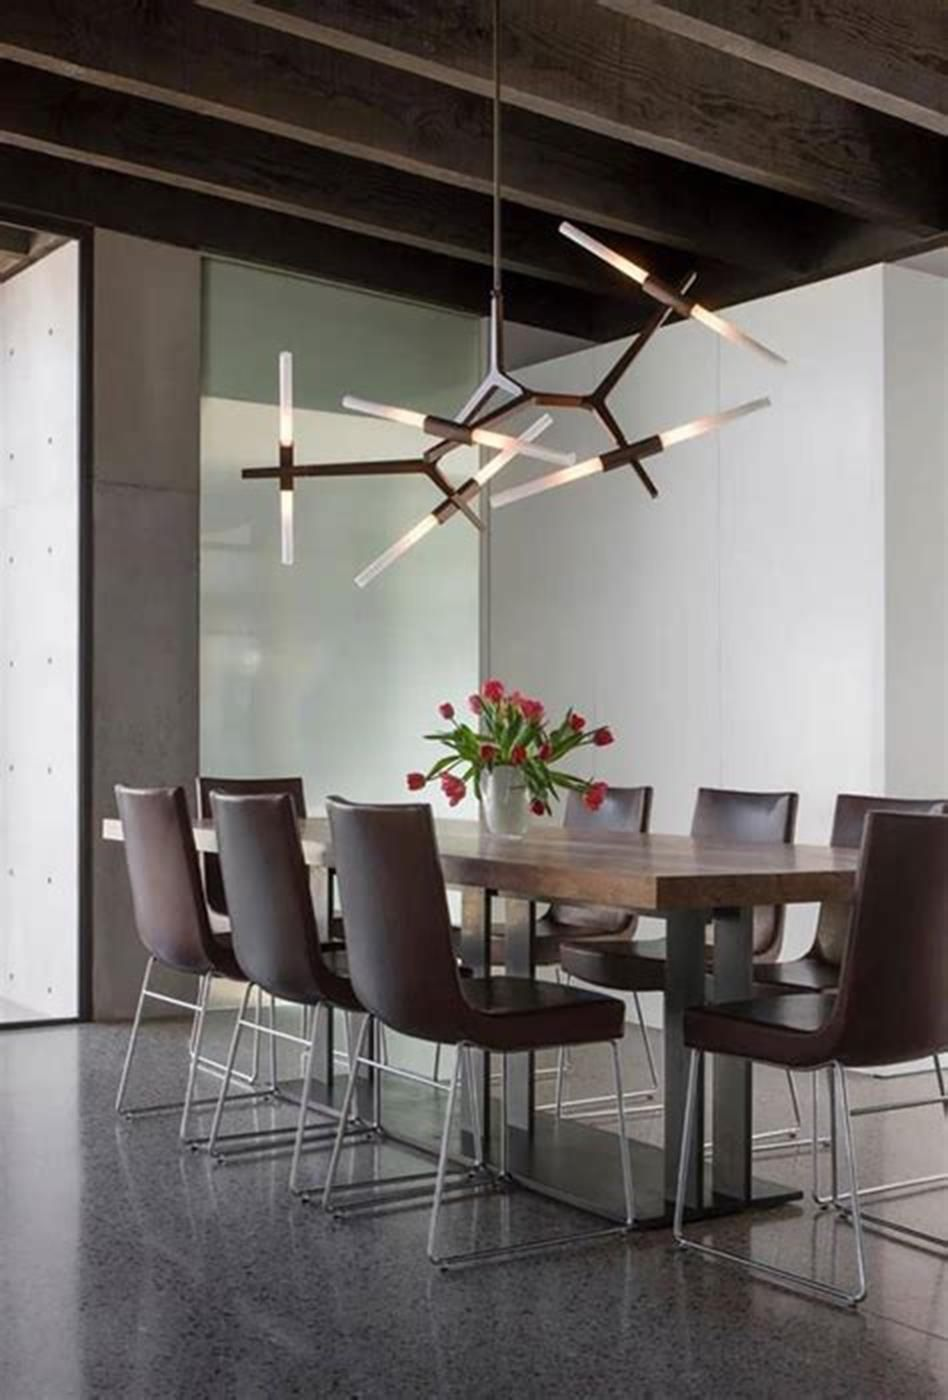 45 Best Modern Chandelier Dining Room Ideas for 2019 images